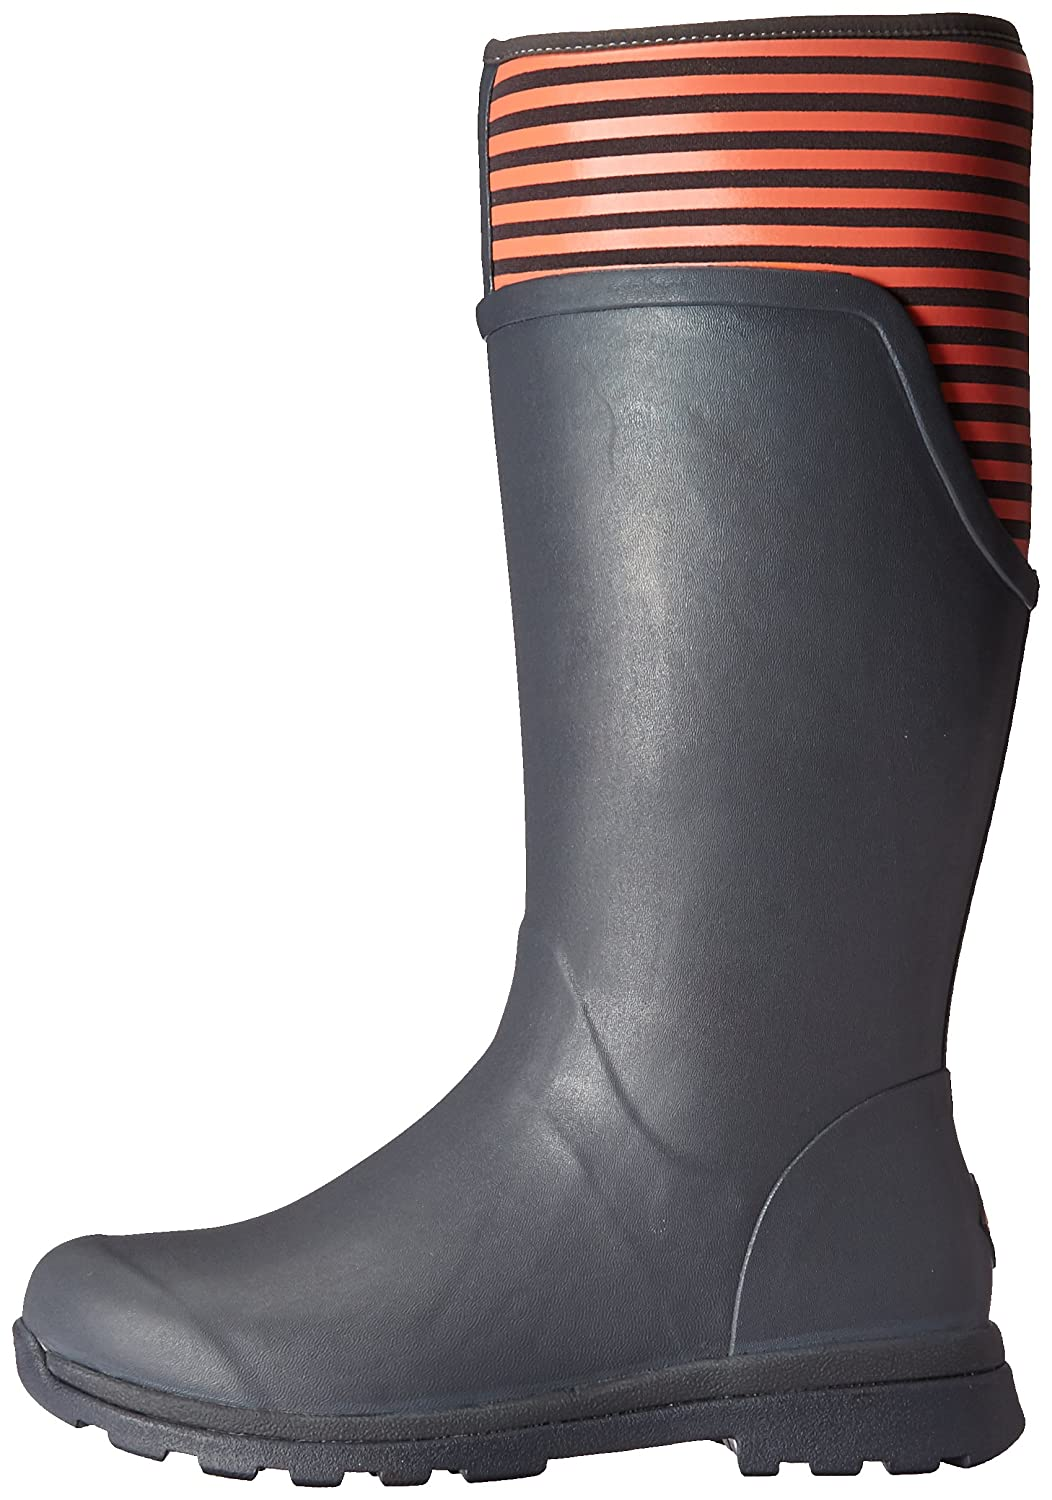 Muck Boot Women's Cambridge B(M) Tall Snow B01NATH7OZ 10 B(M) Cambridge US|Gray With Coral Stripe 2093ce